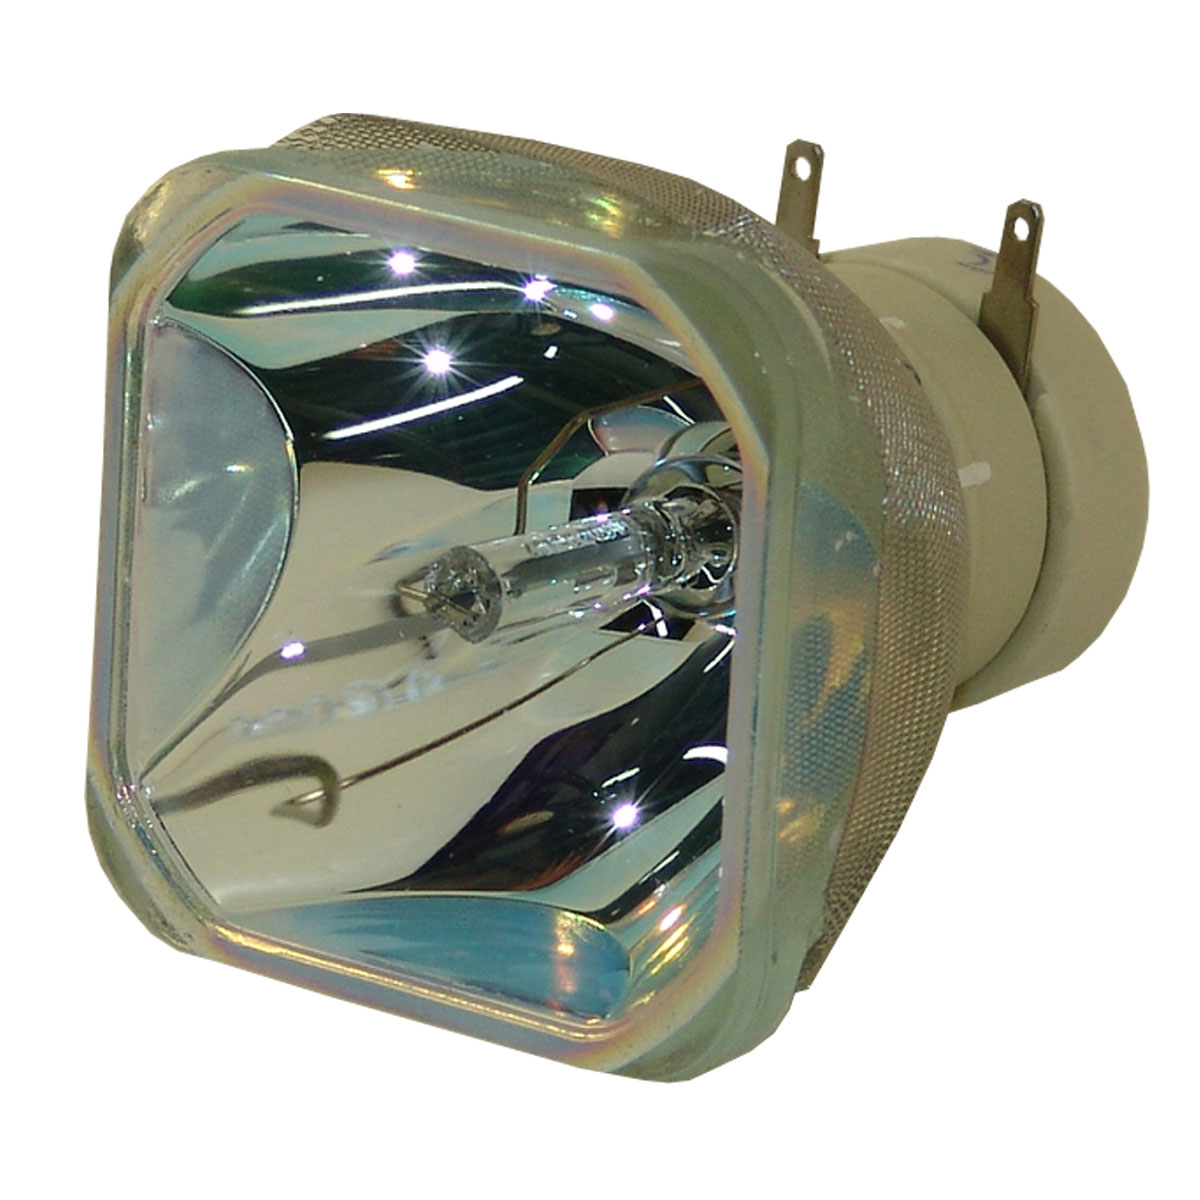 Original Philips Projector Lamp Replacement with Housing for Hitachi HCP-Q65 - image 5 of 5